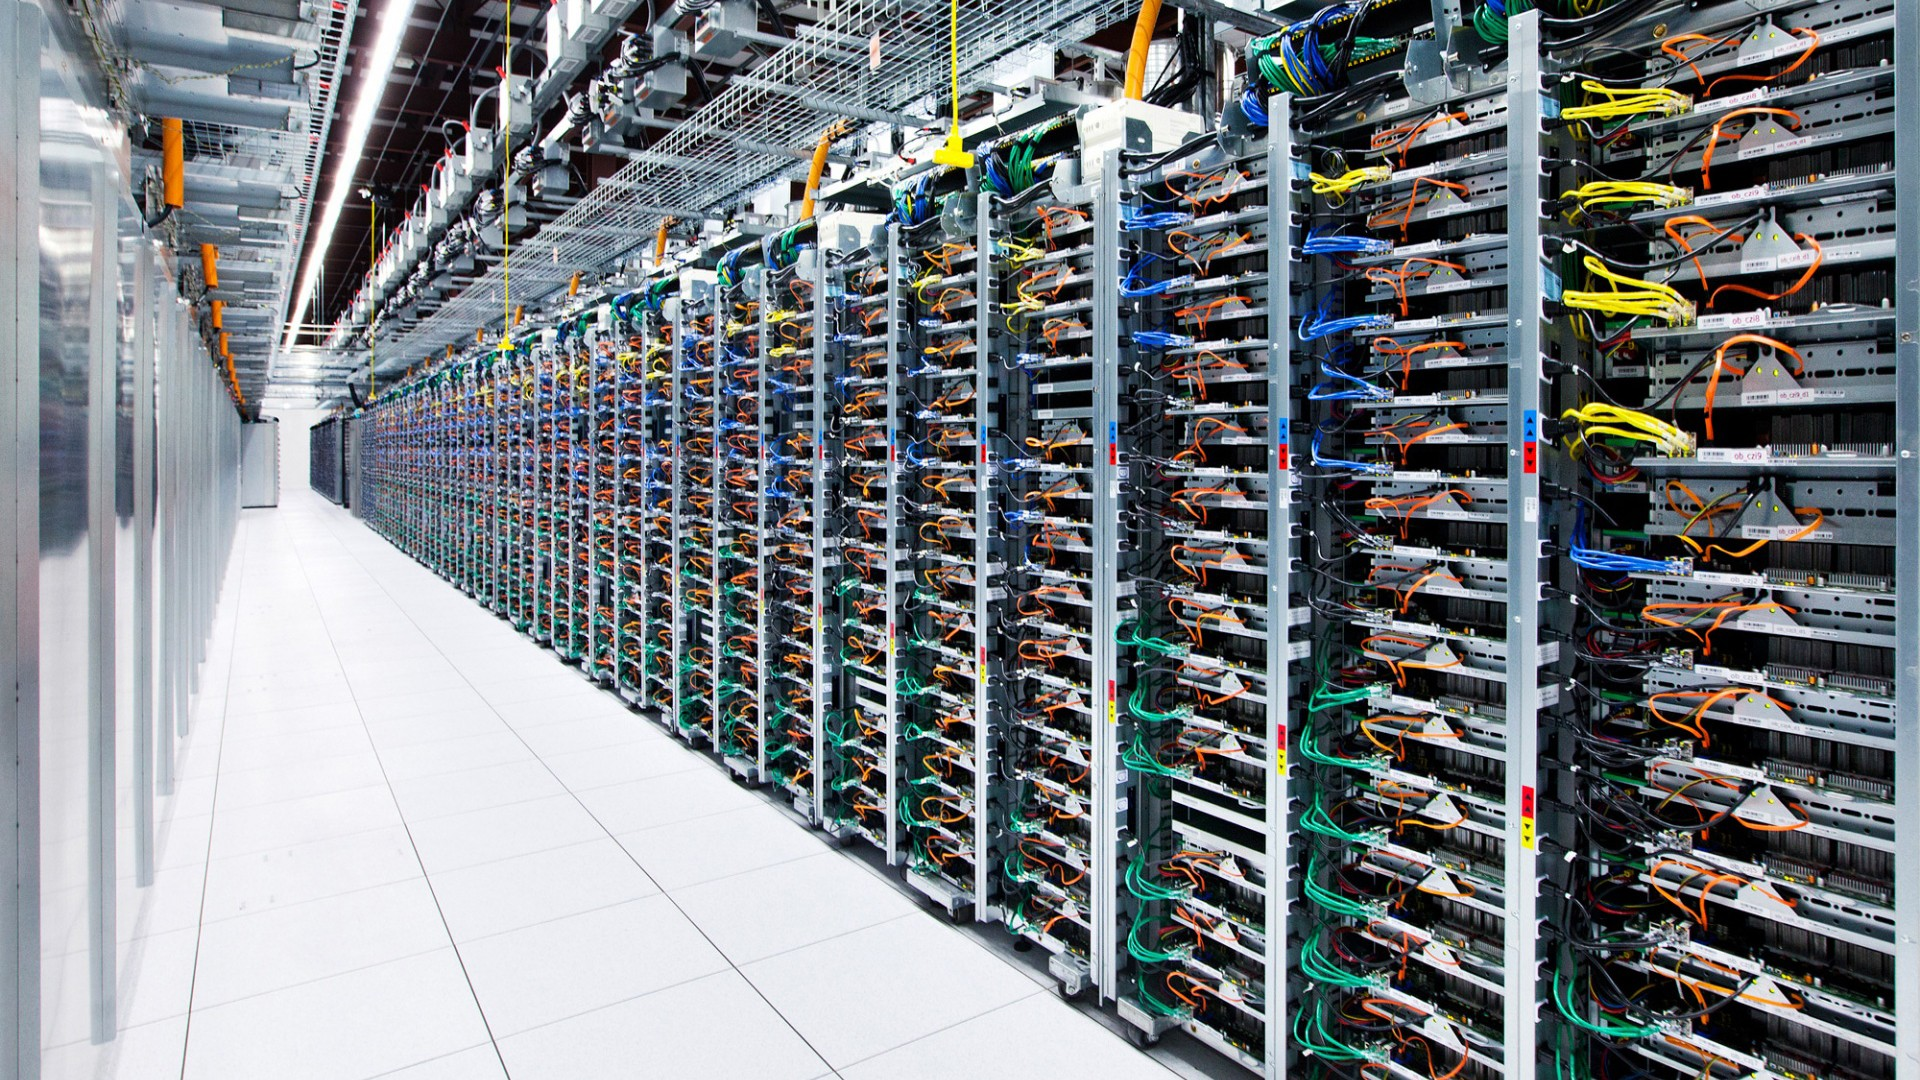 google-data-center-network-server-computer-1920x1080